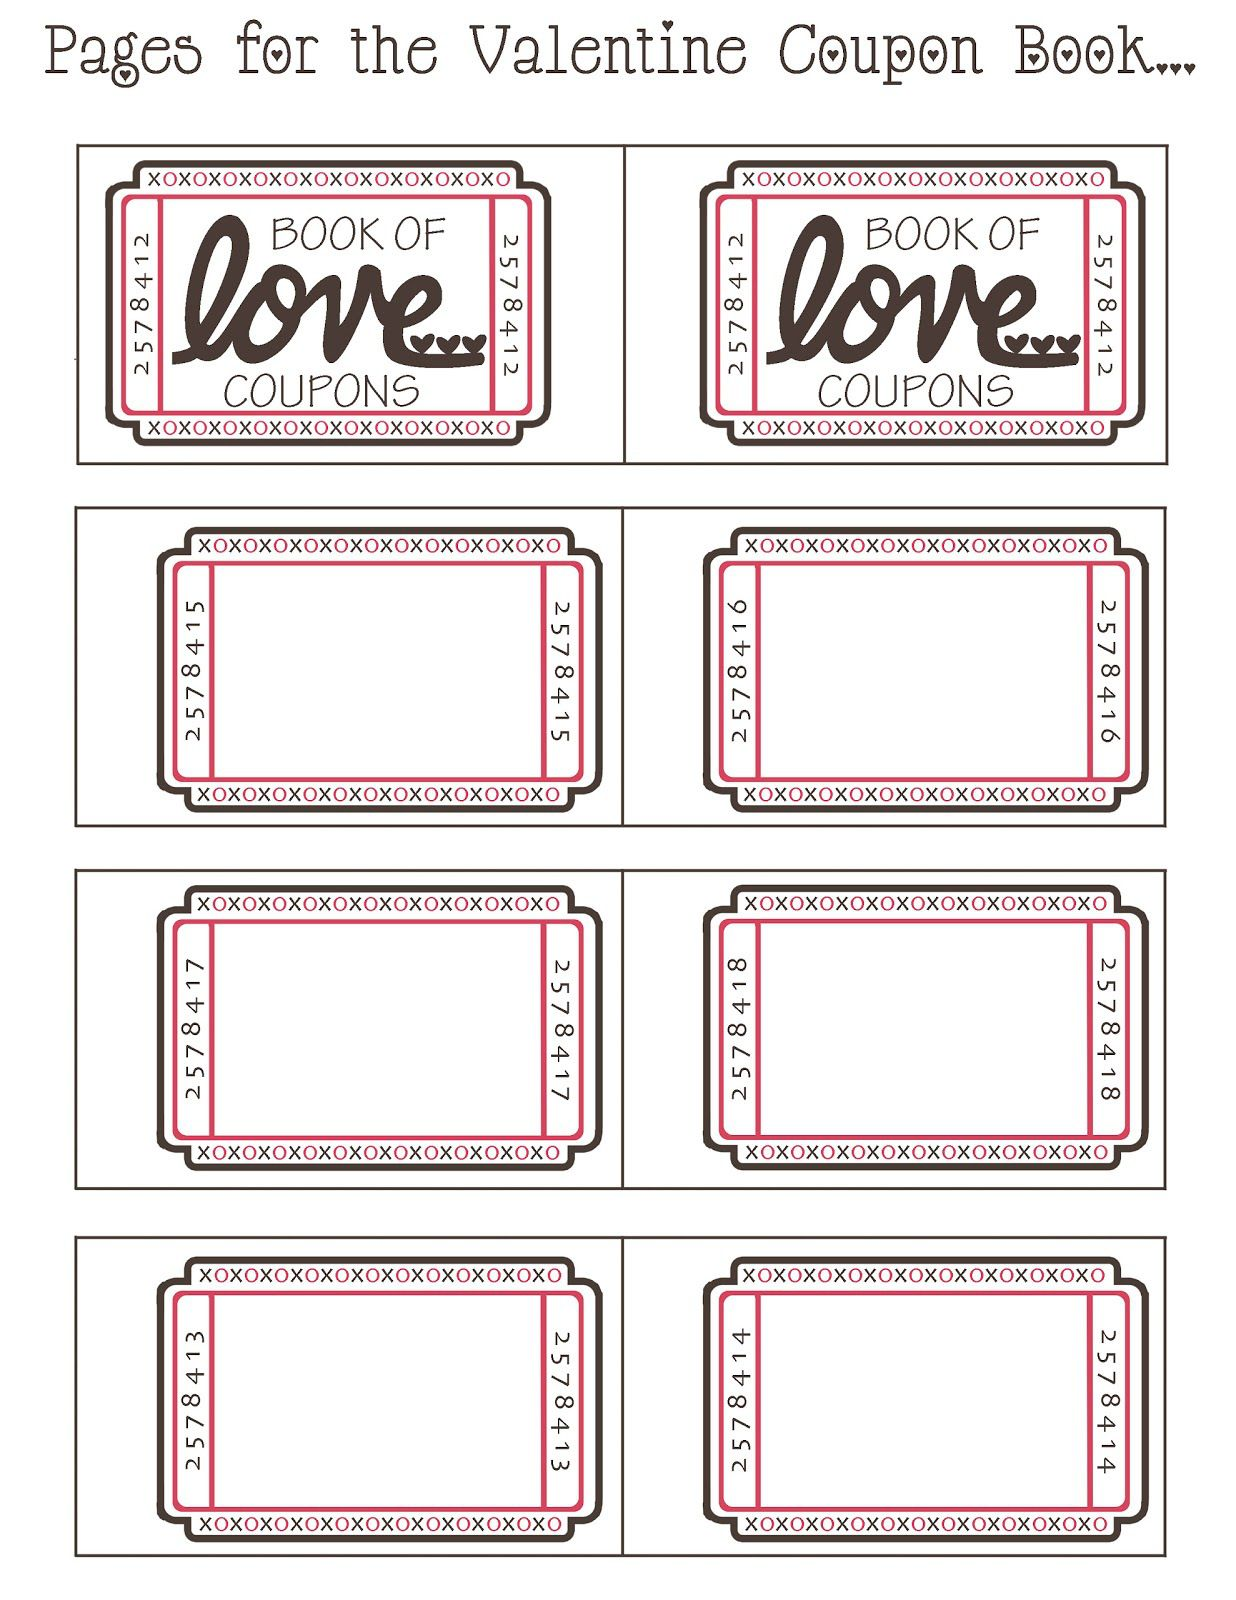 coupon book template for husband coupon book ideas for husband blank love coupon templates